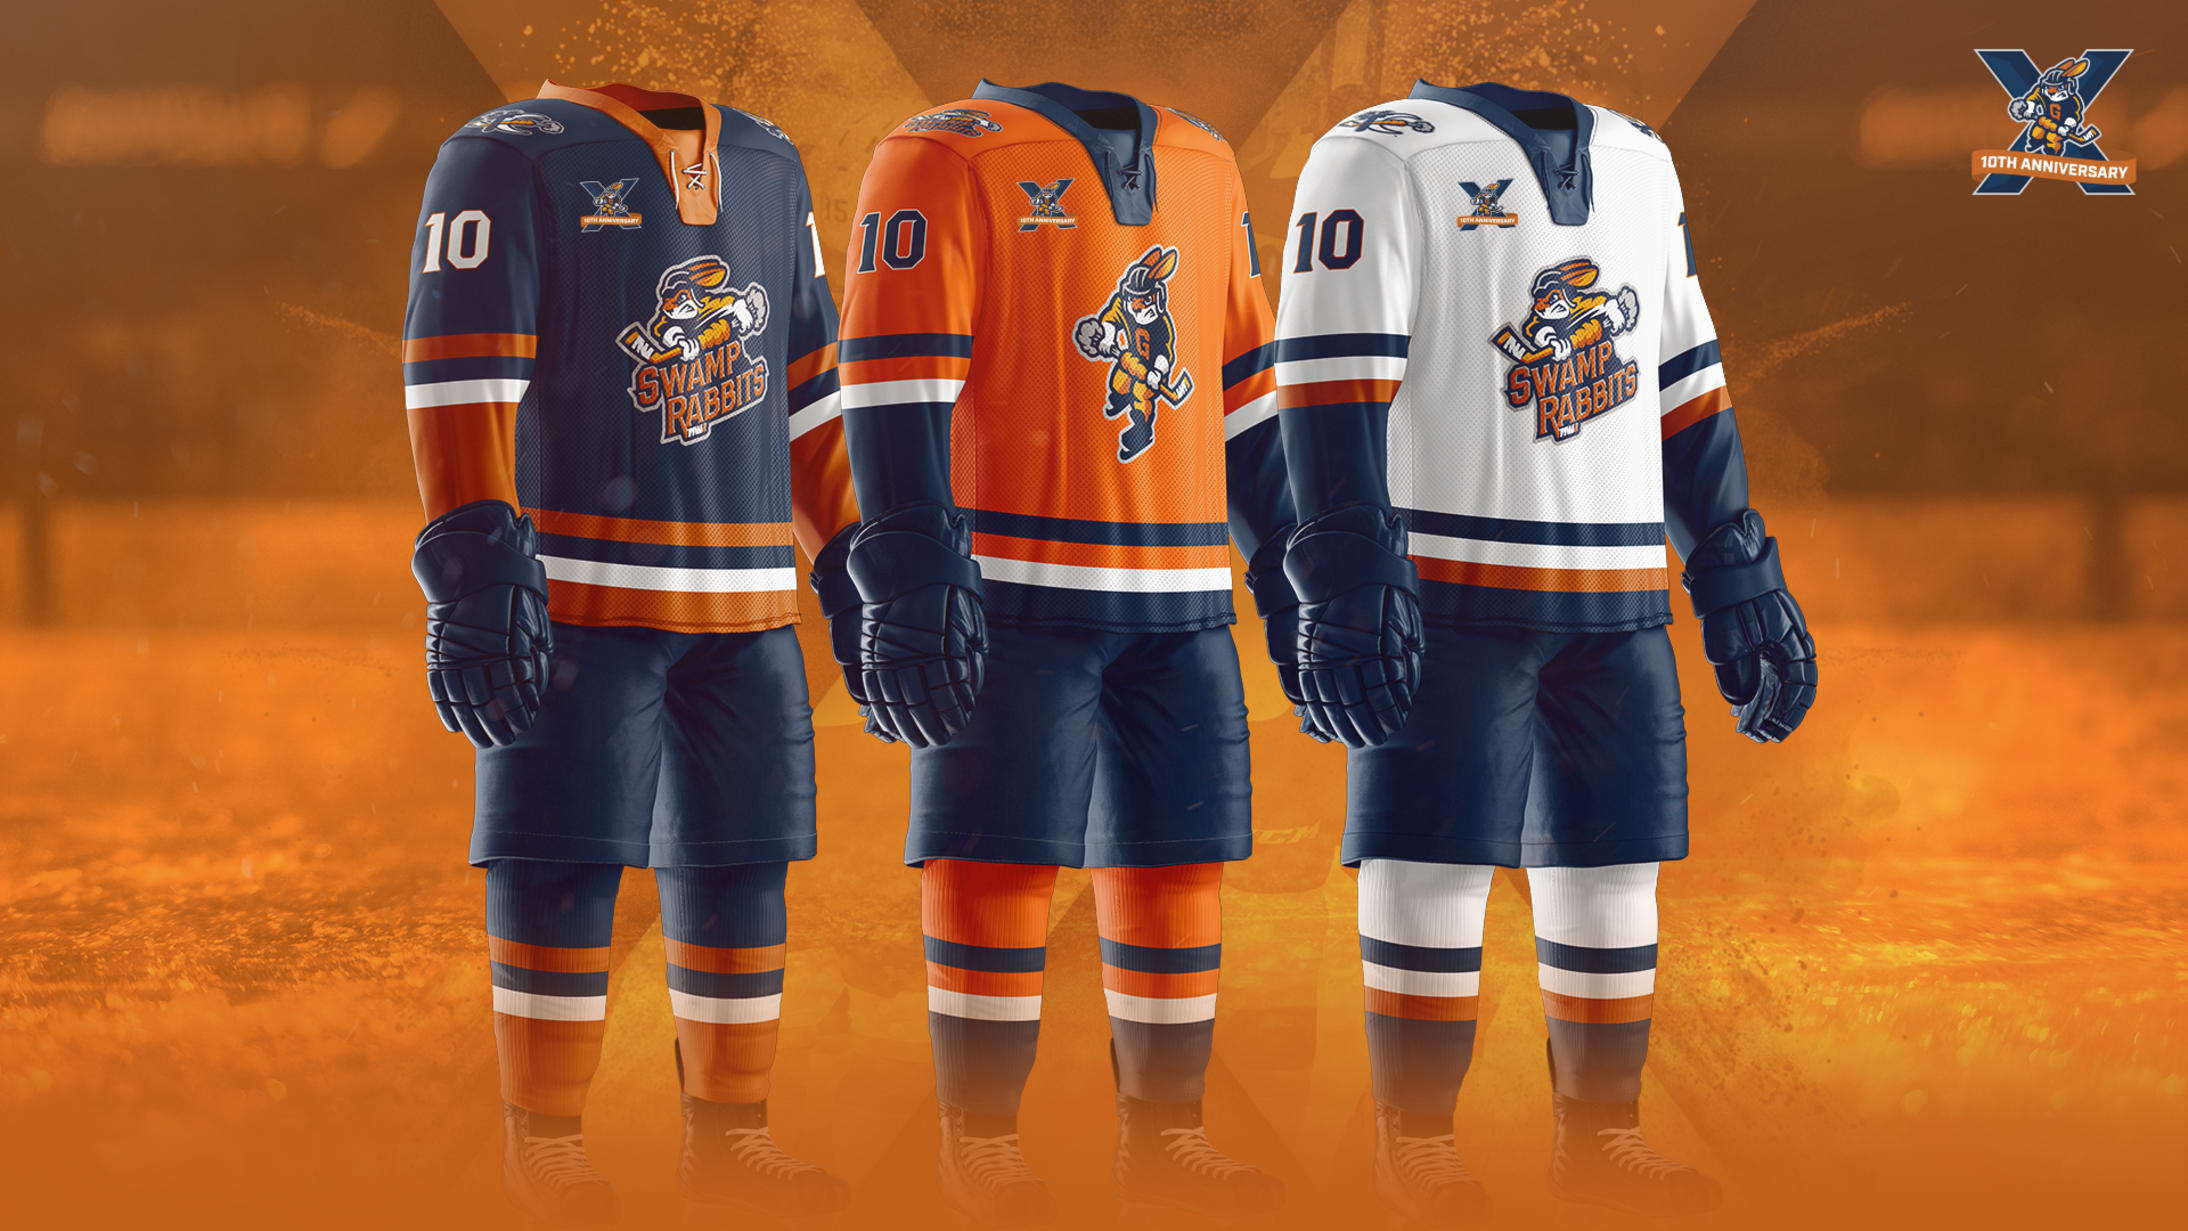 96410170 The new jersey set showcases a clean, professional look that will usher in  a new era of Swamp Rabbits hockey, focused on a renewed tradition of  excellence ...